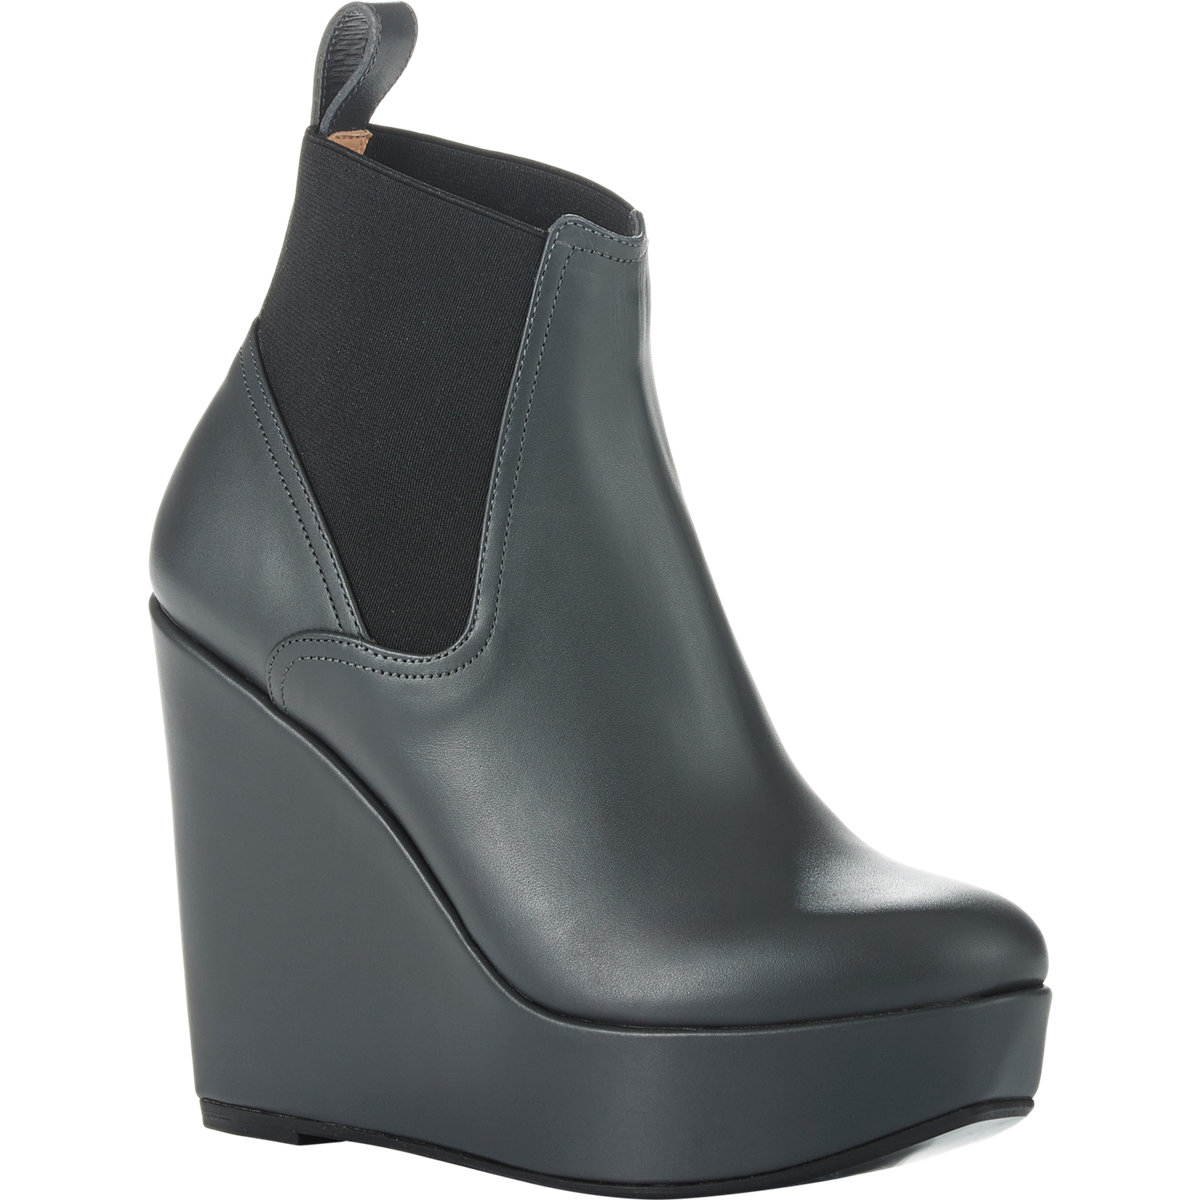 159b469ba950 Lyst - Robert Clergerie Fille Wedge Boots in Gray